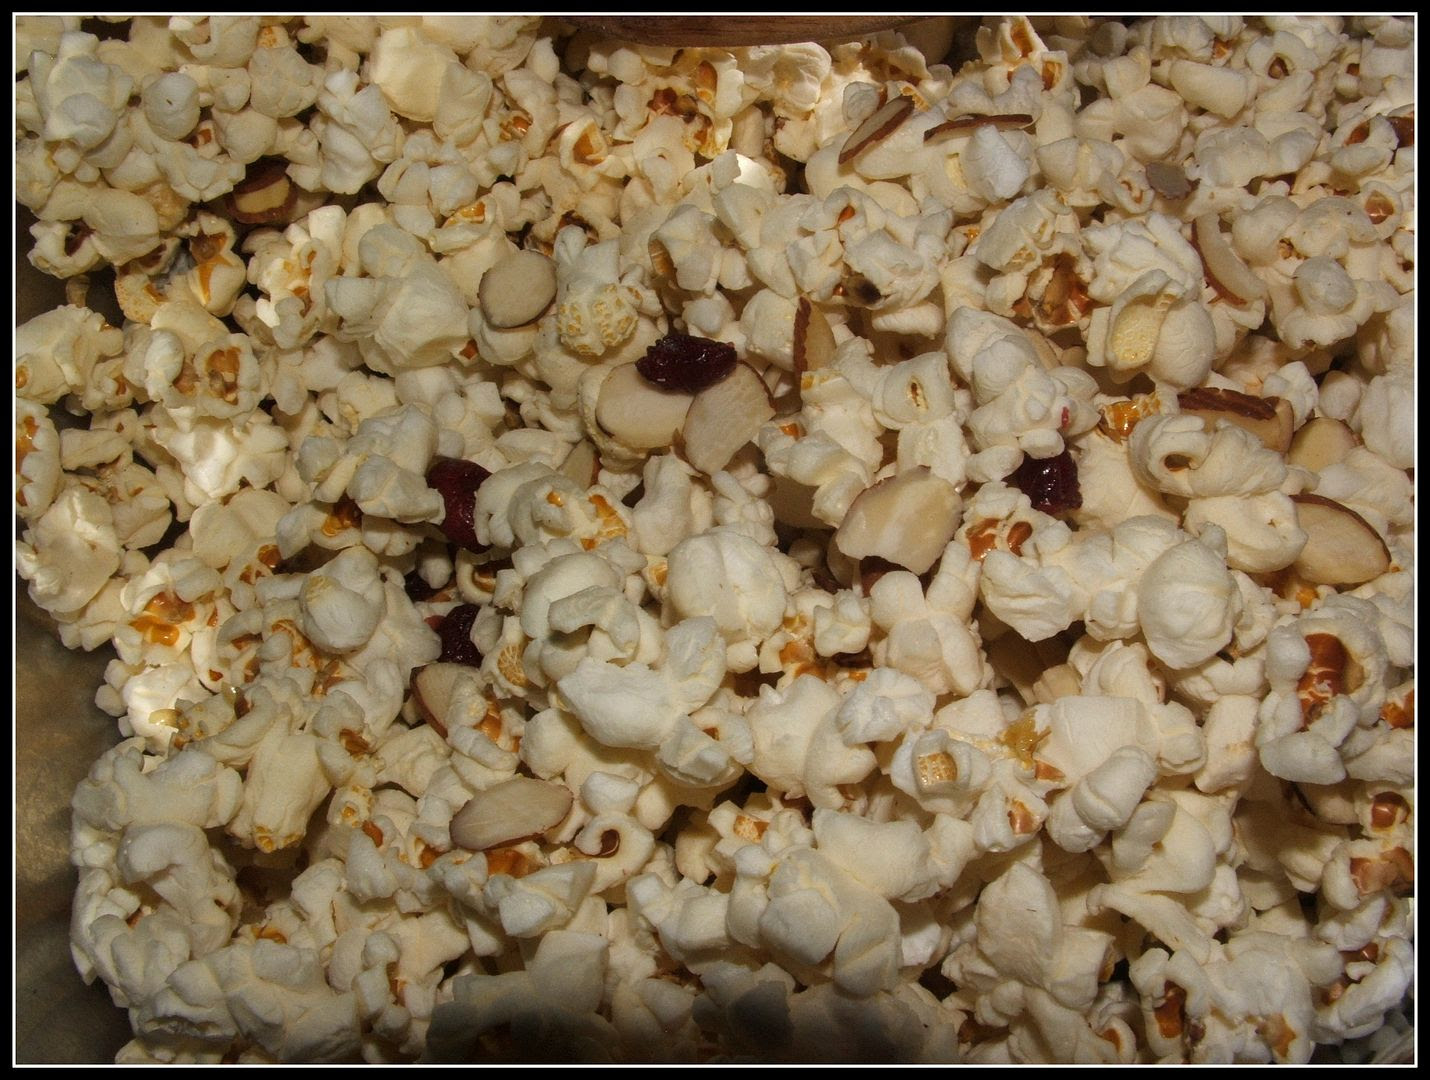 caramel popcorn by Angie Ouellette-Tower for godsgrowinggarden.com photo 001_zps877fff43.jpg